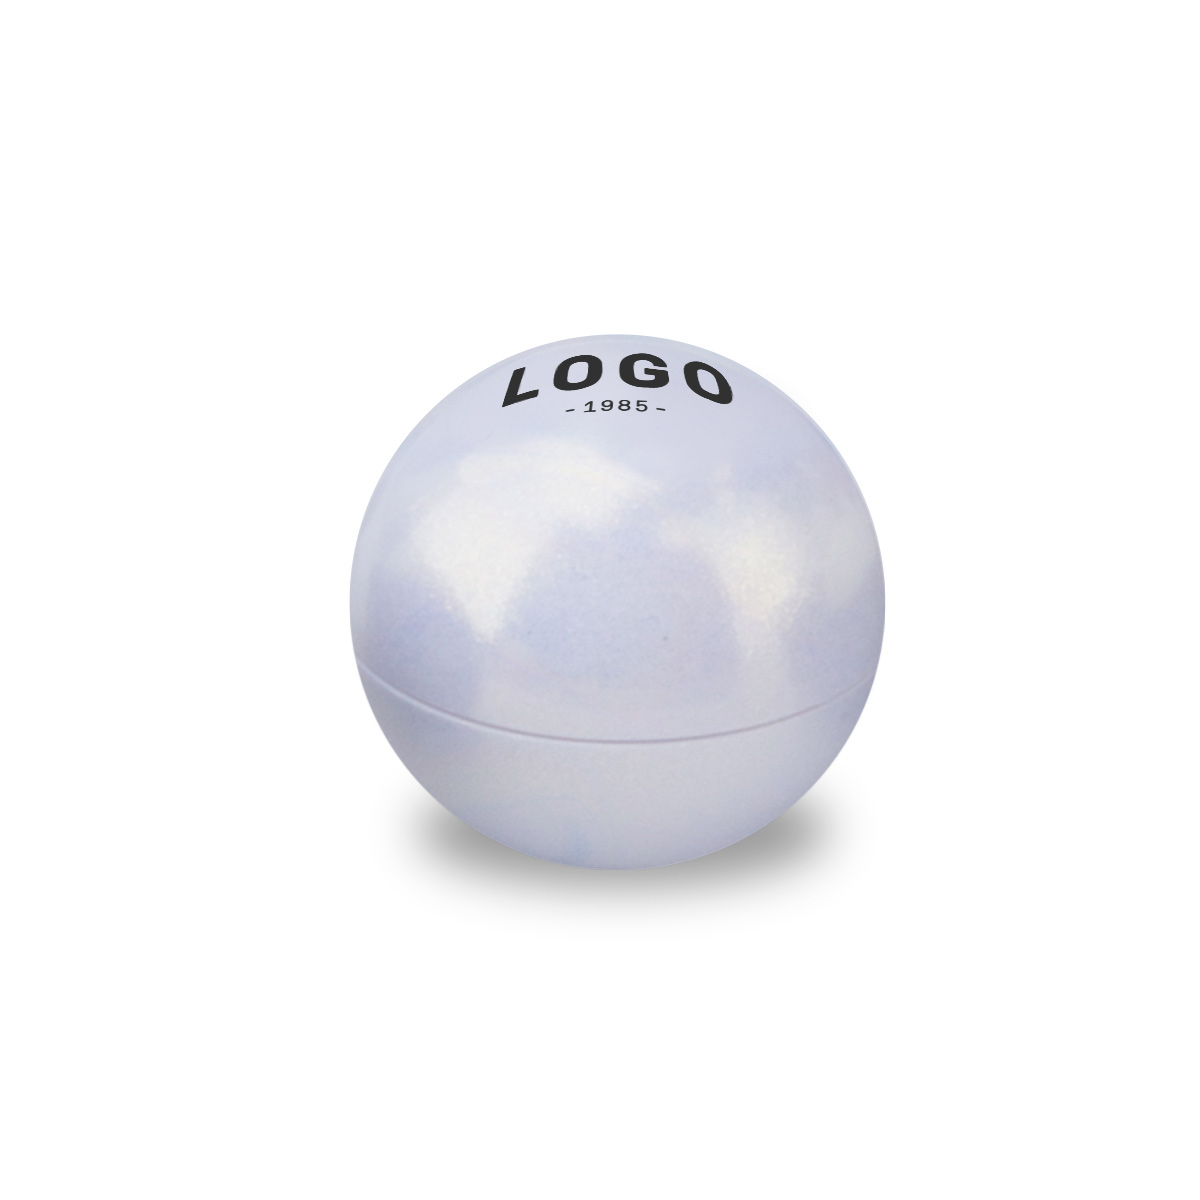 130264 iridescent lip balm ball one color one location imprint